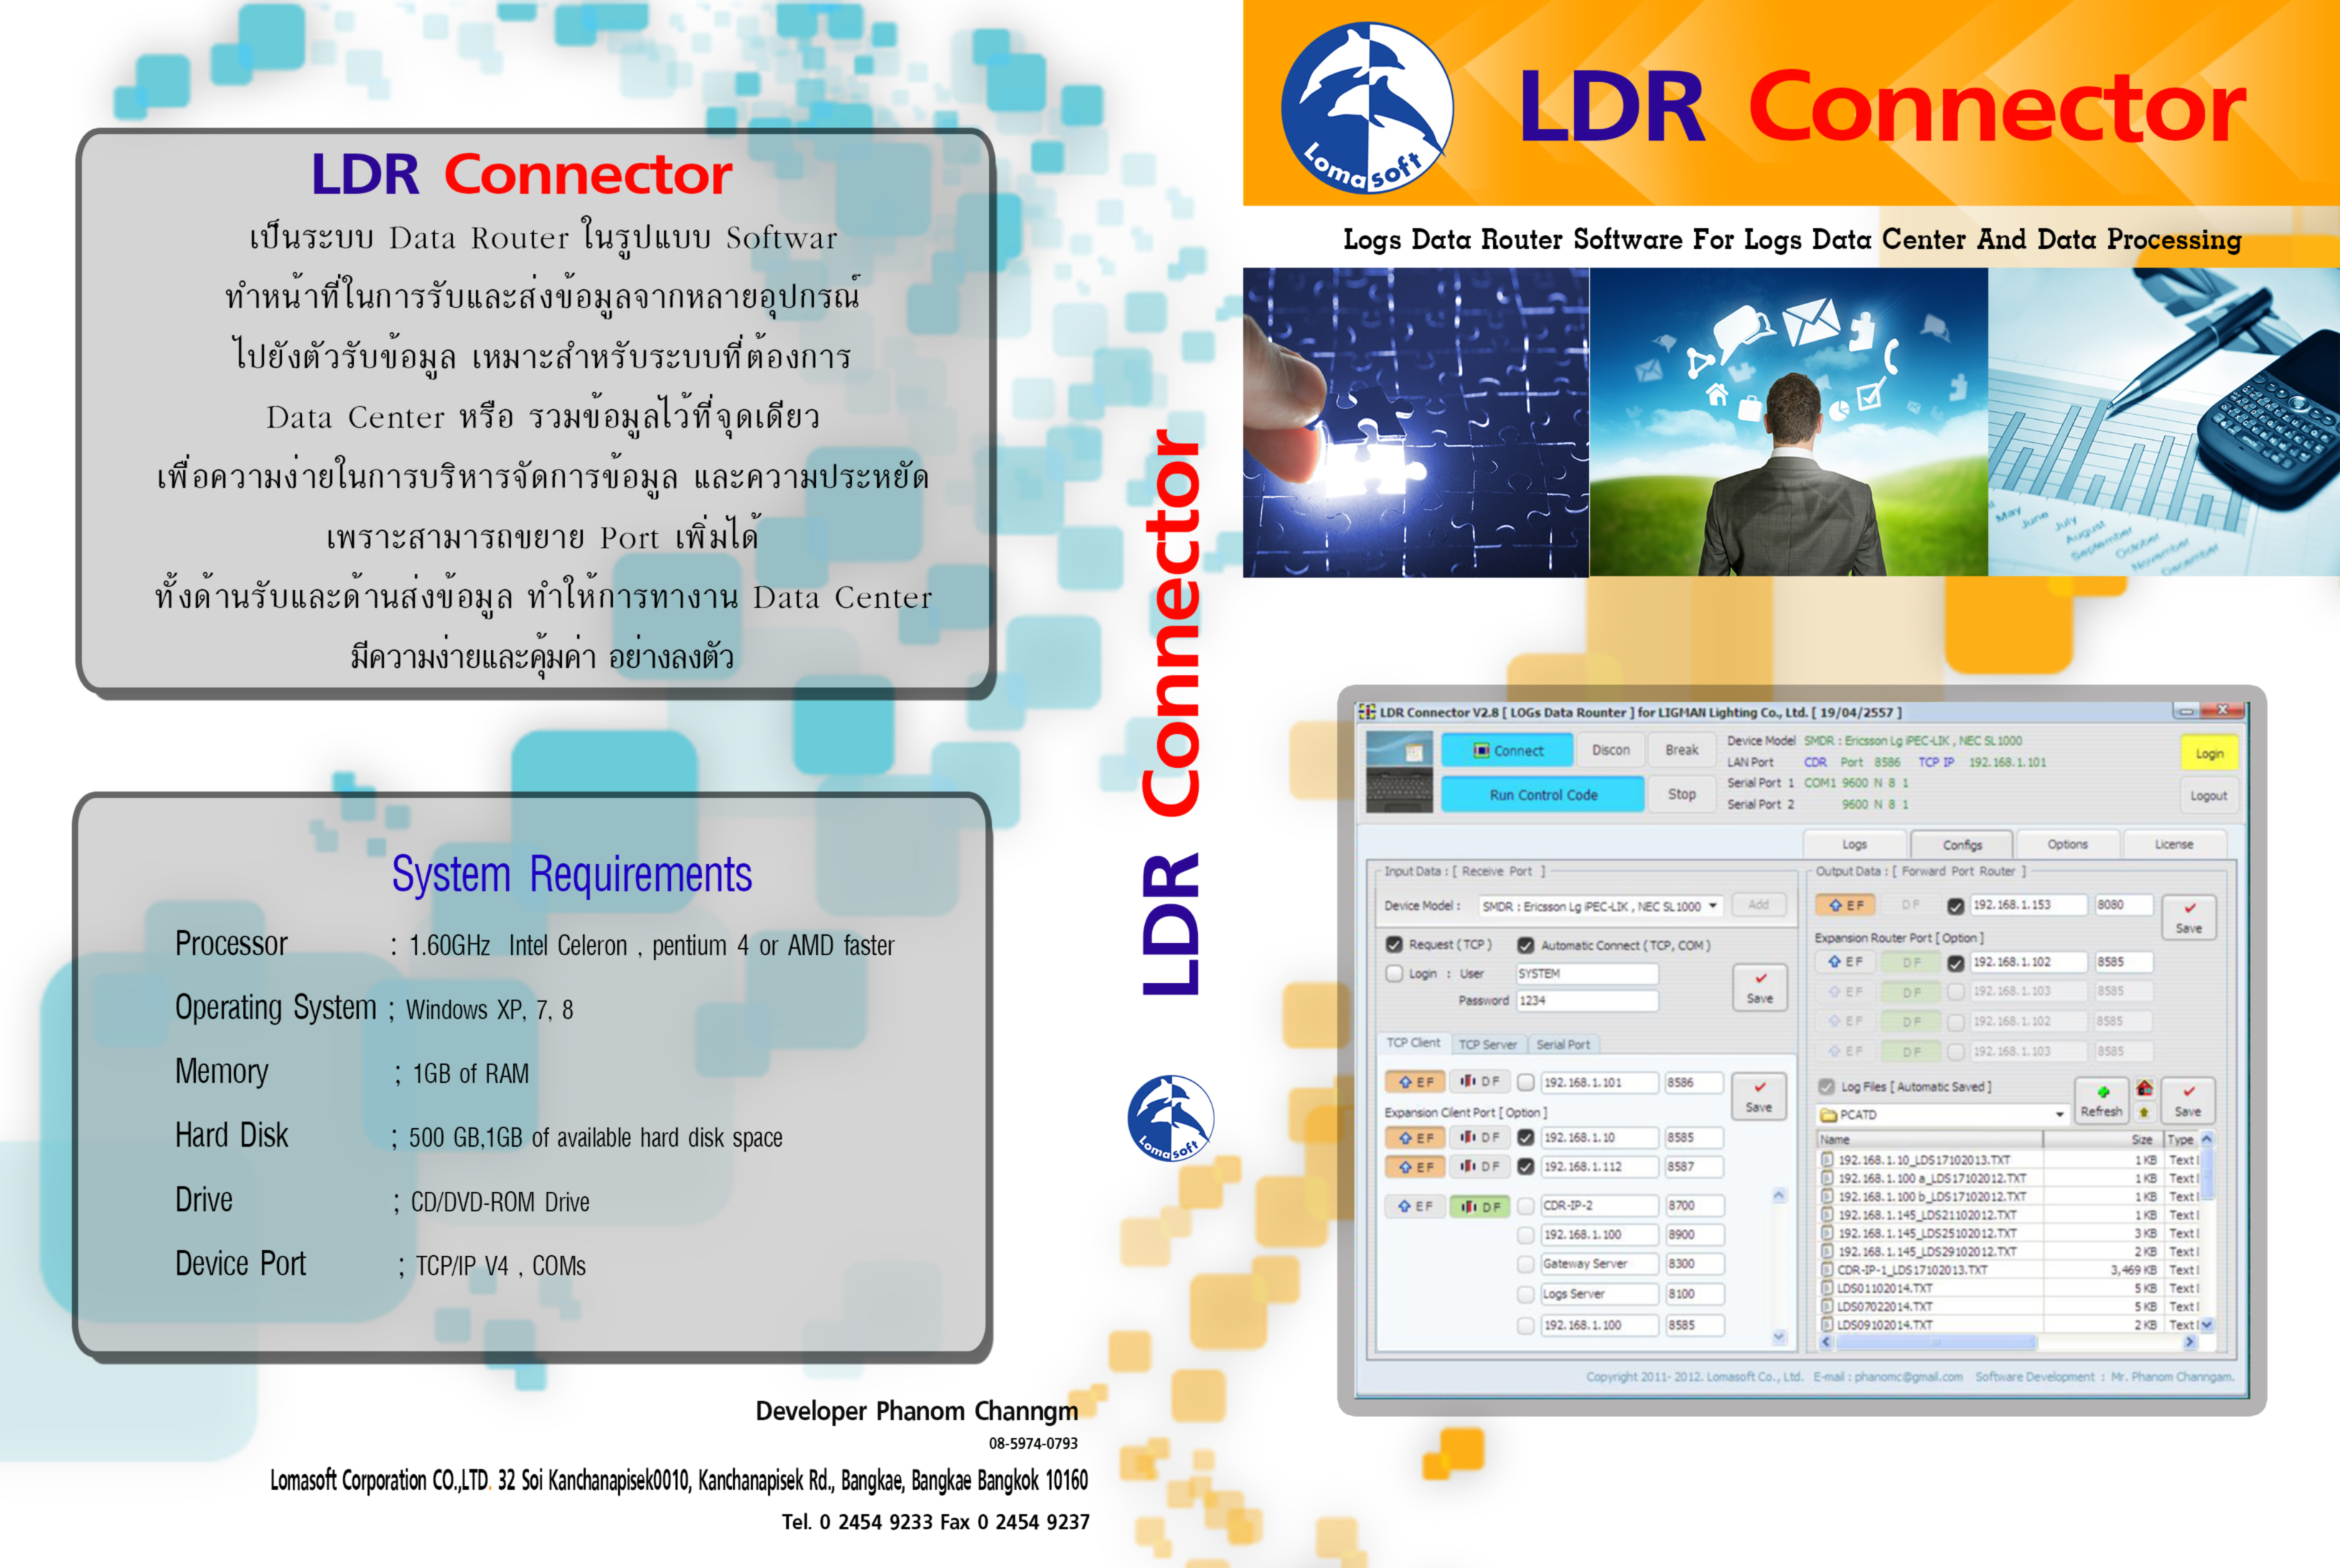 Lomasoft-LDR-Connector 1 Port